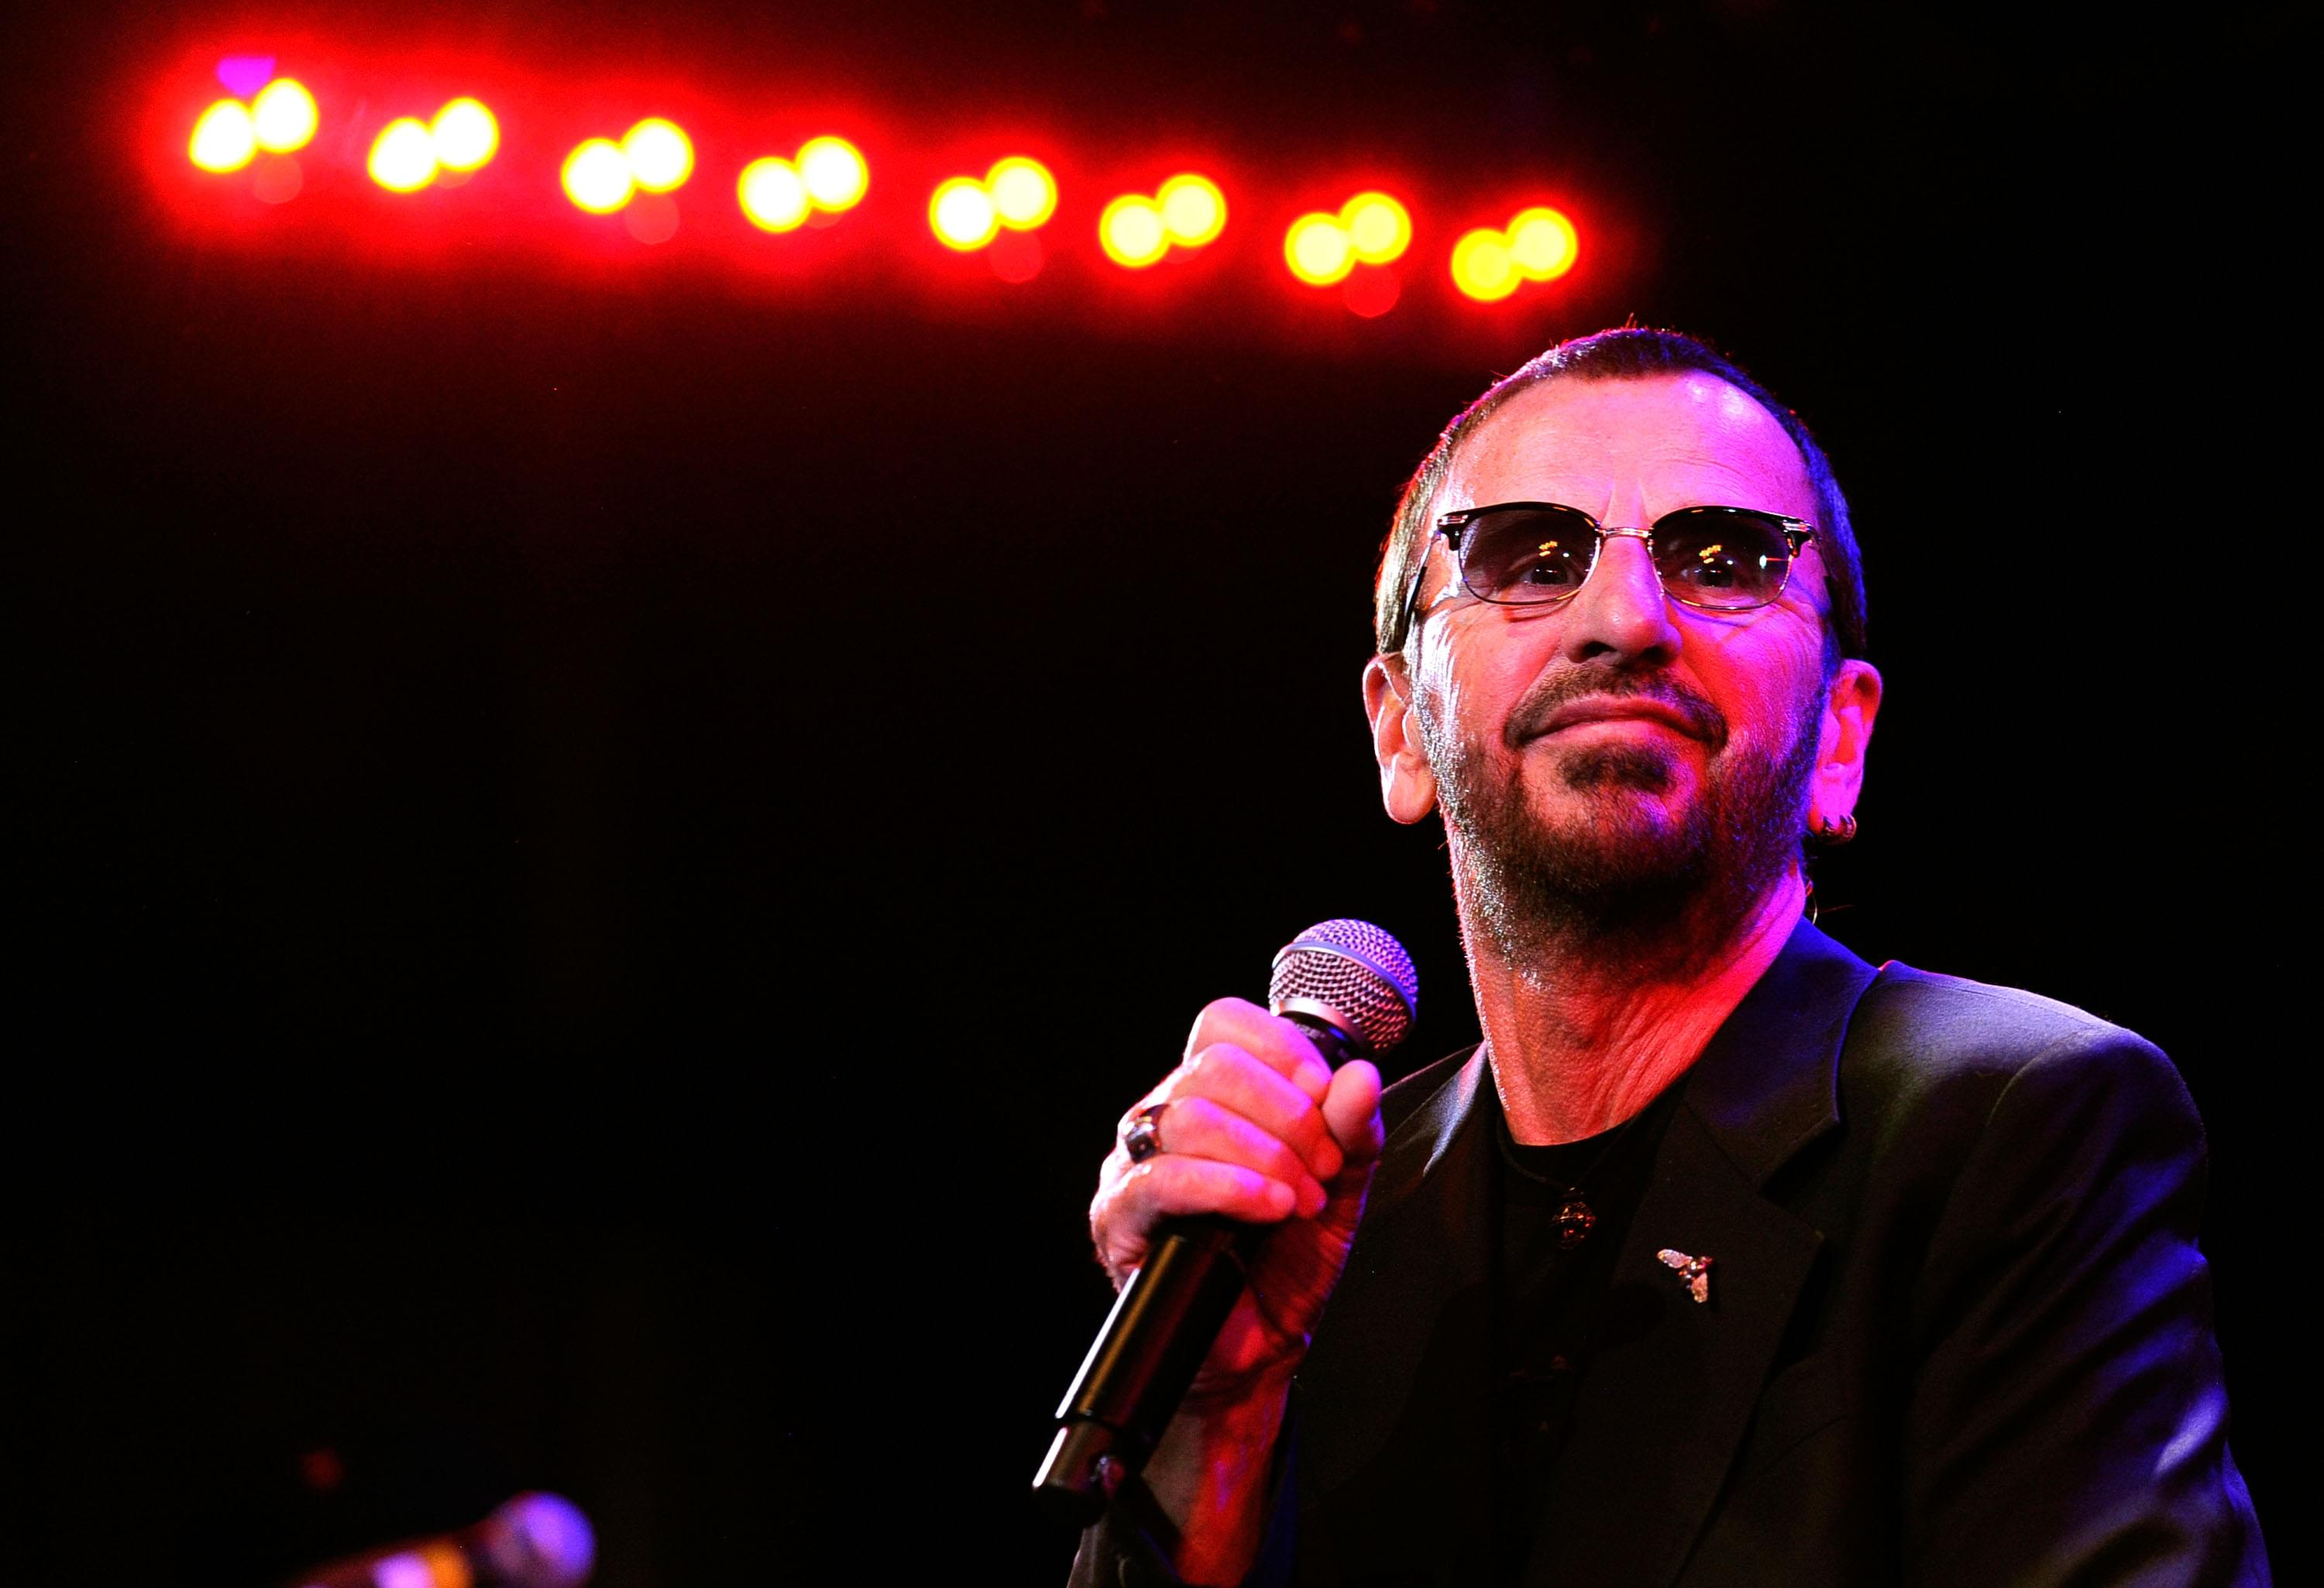 Video: Ringo Starr Once Said If The Beatles Didn't Last, He Wanted To Open…A Hair Salon?!